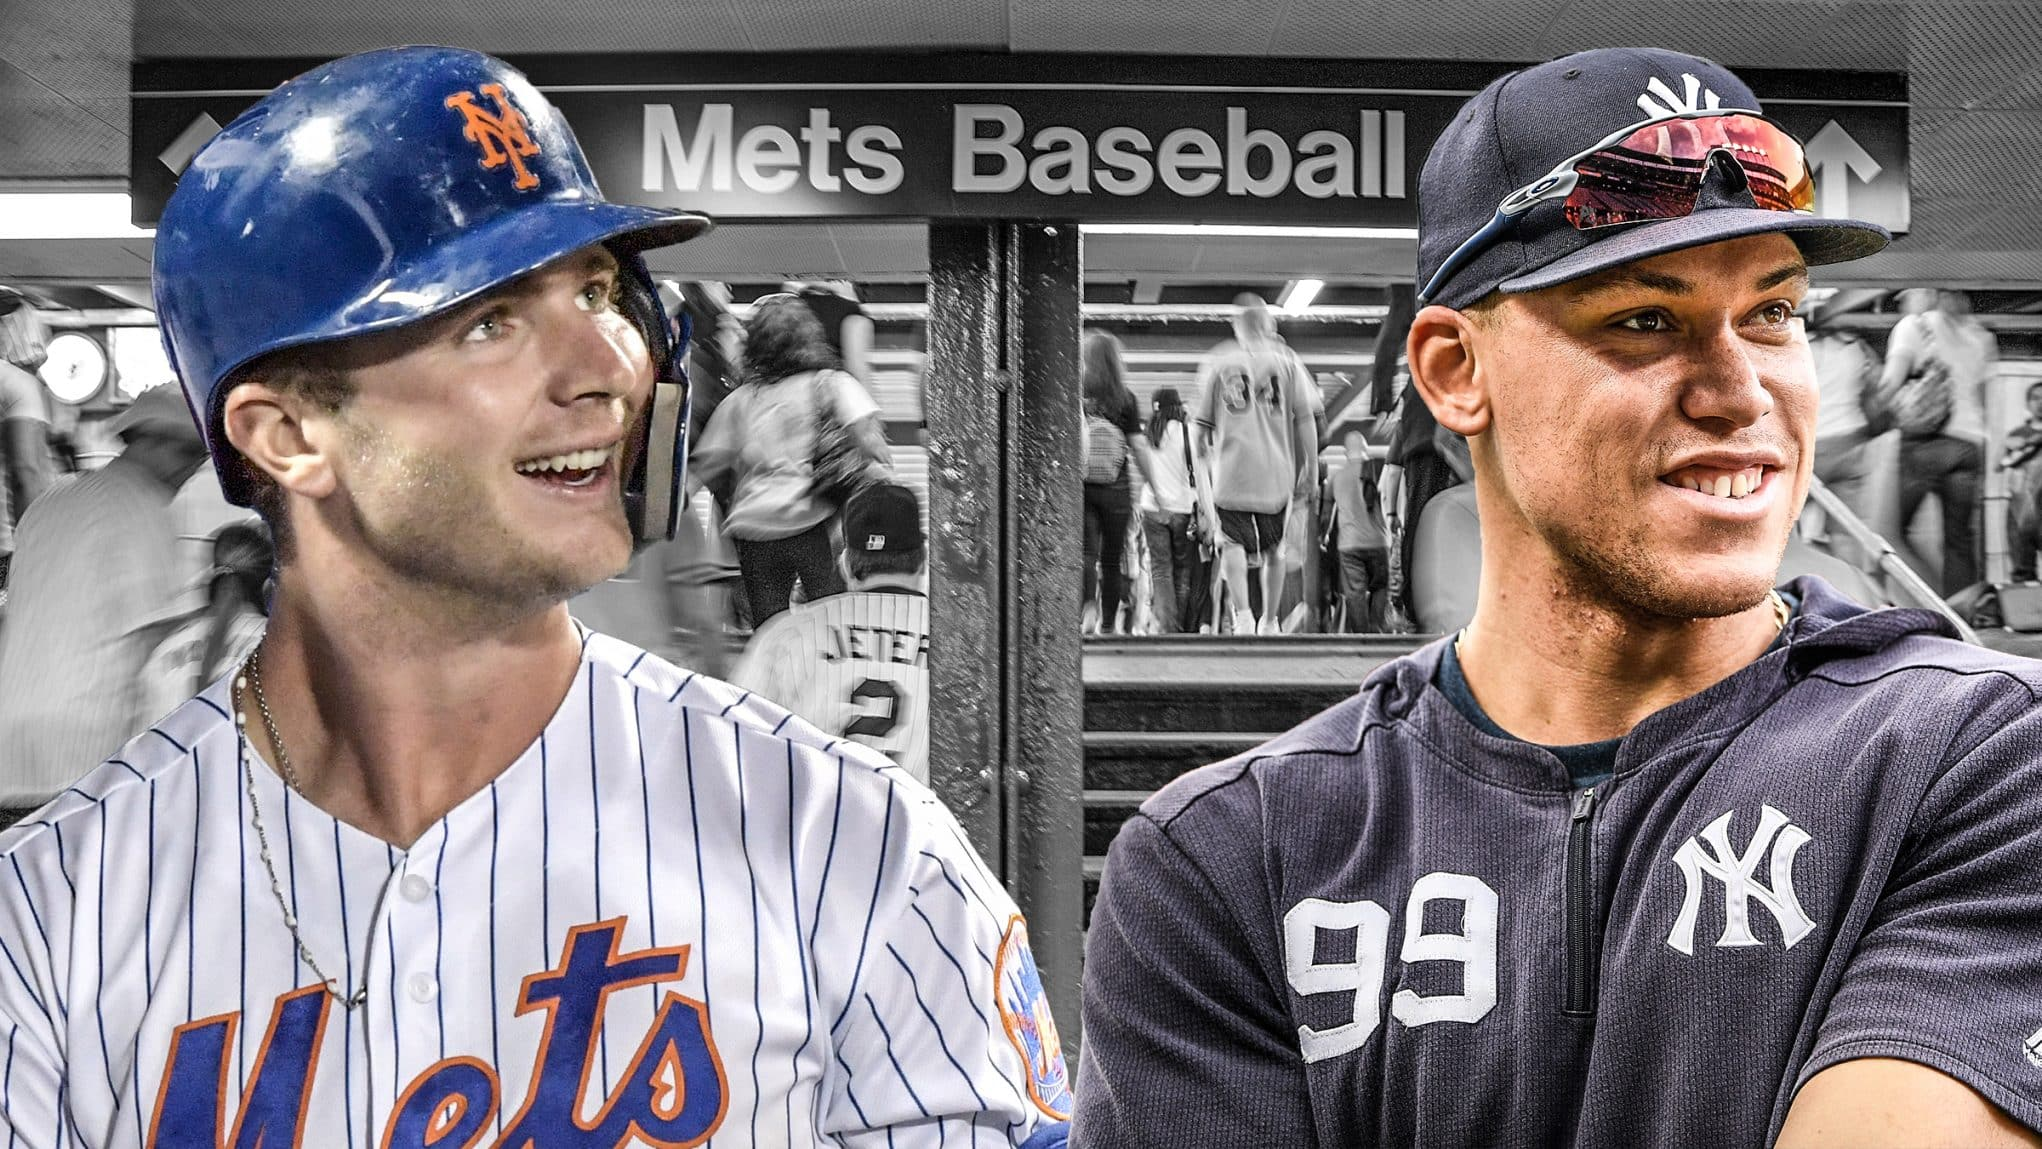 The New York Mets need Subway Series far more than Yankees right now